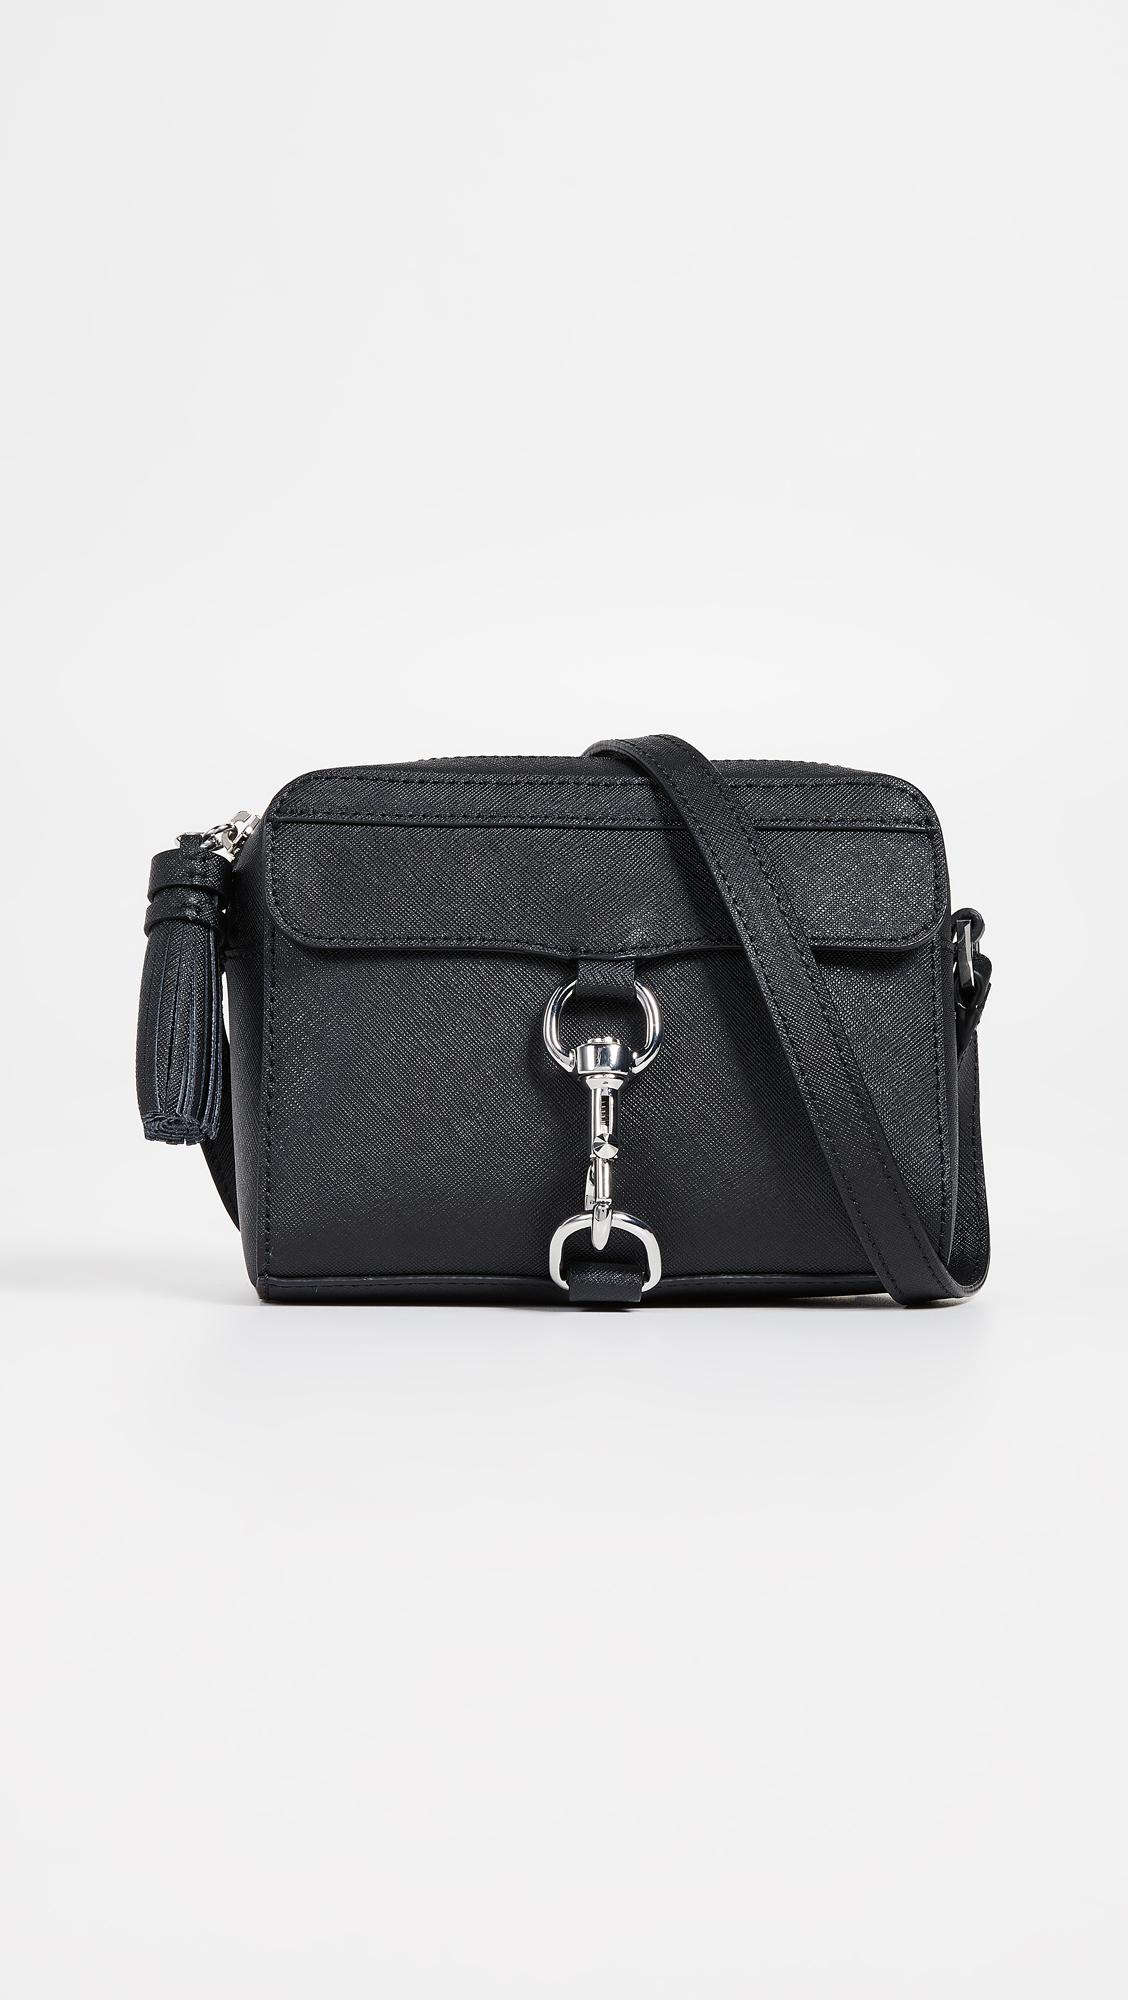 1fba57f5d2 Gallery. Previously sold at  Shopbop · Women s Camera Bags Women s Rebecca  Minkoff Mab ...